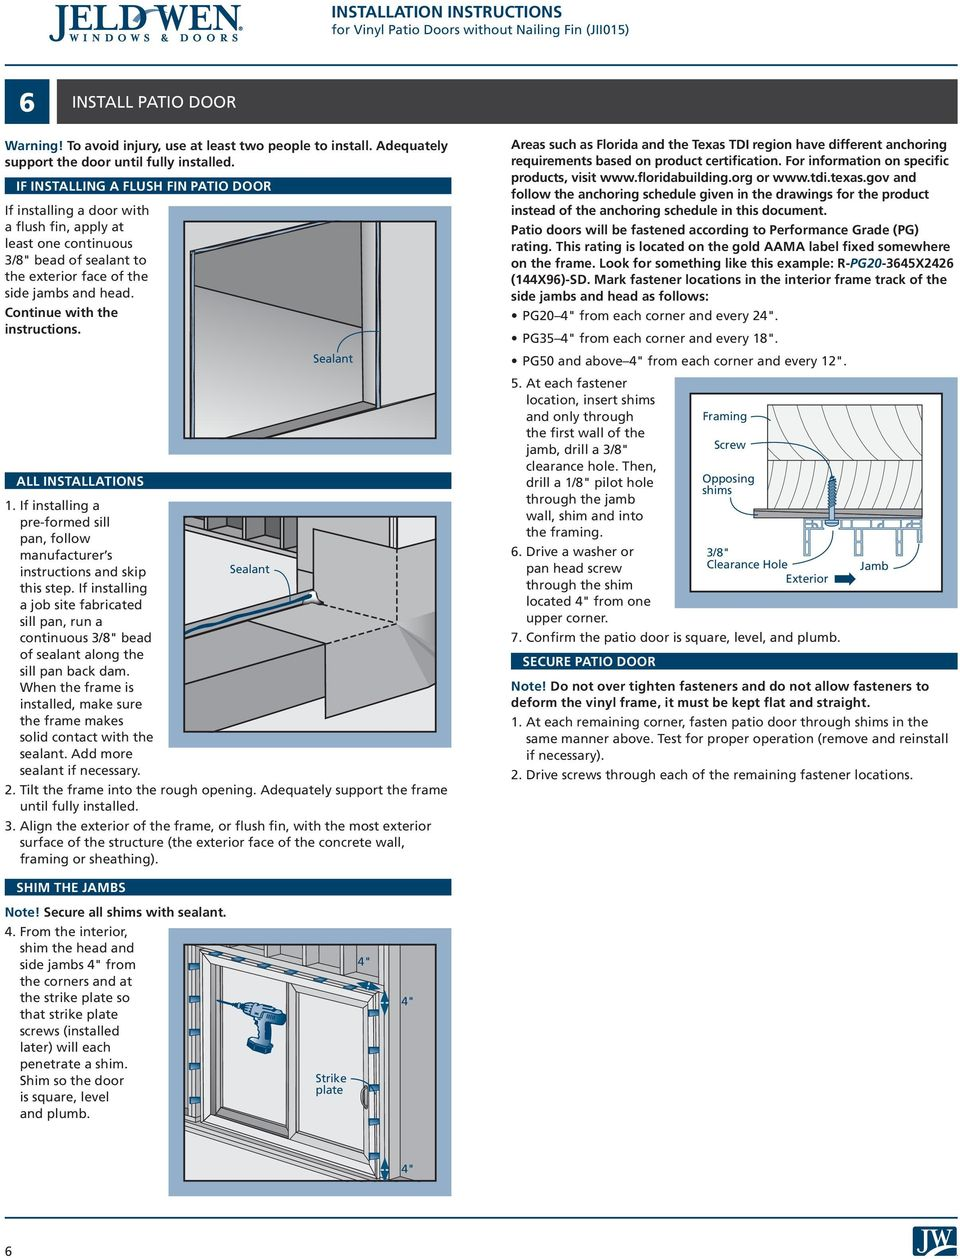 Installation Instructions For Vinyl Patio Doors Without Nailing Fin